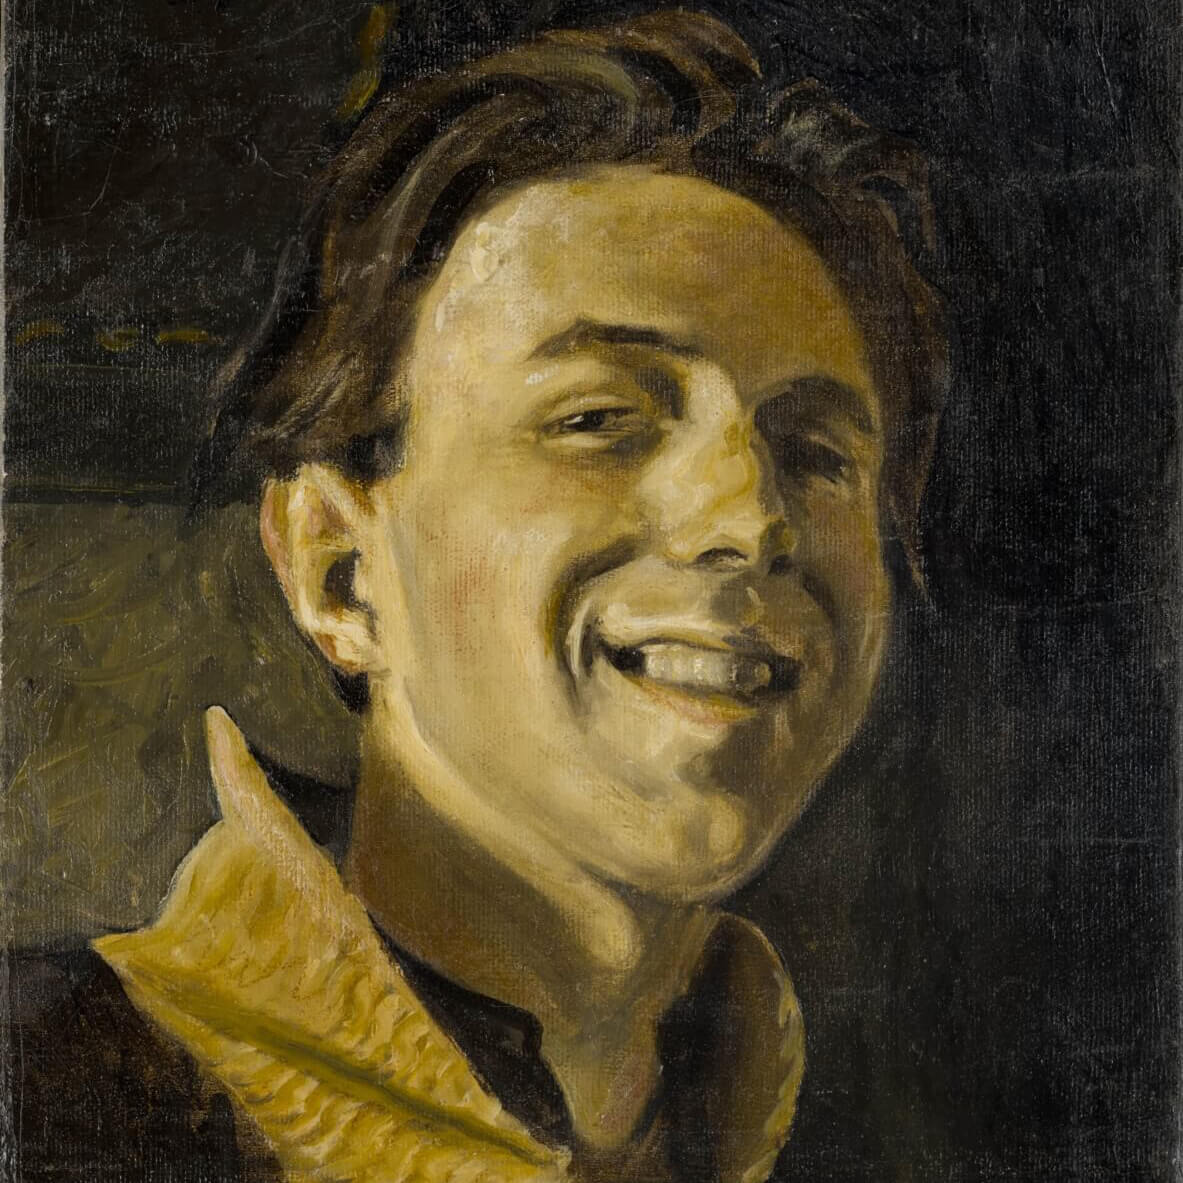 Self portrait oil on canvas painting of Clyfford Still at age 19 where he is smiling